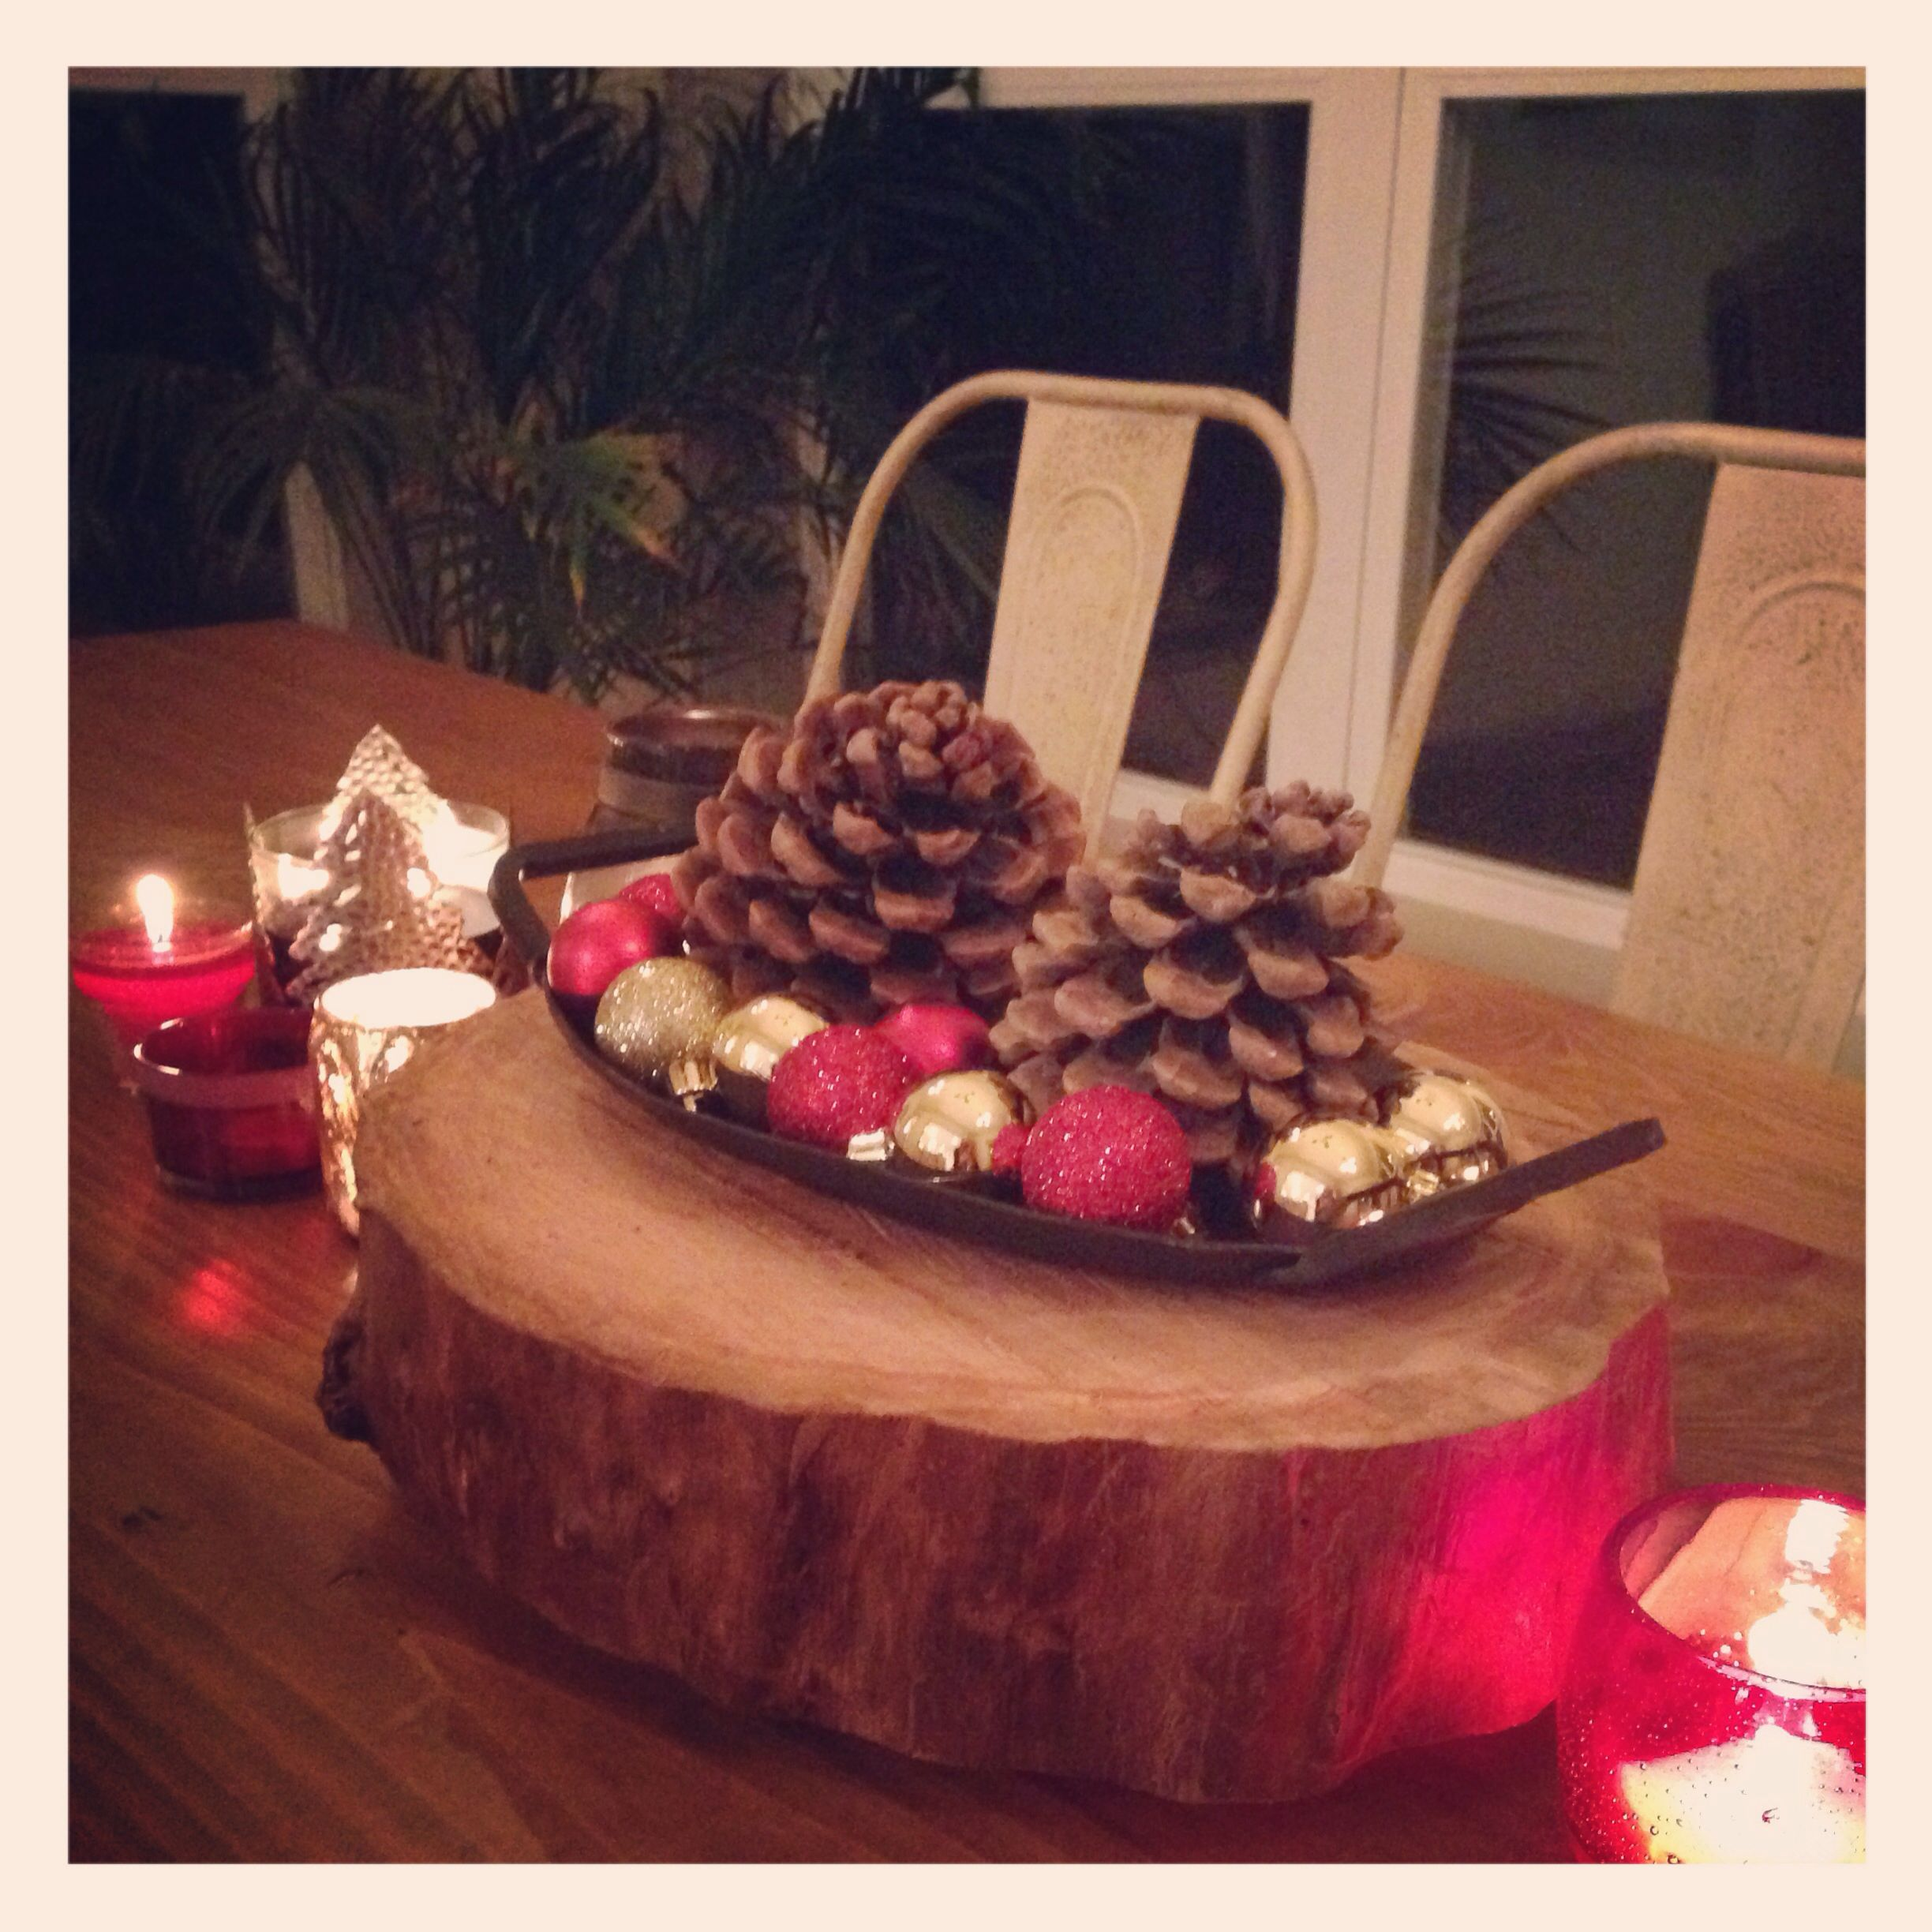 Log serving plate holiday centerpiece